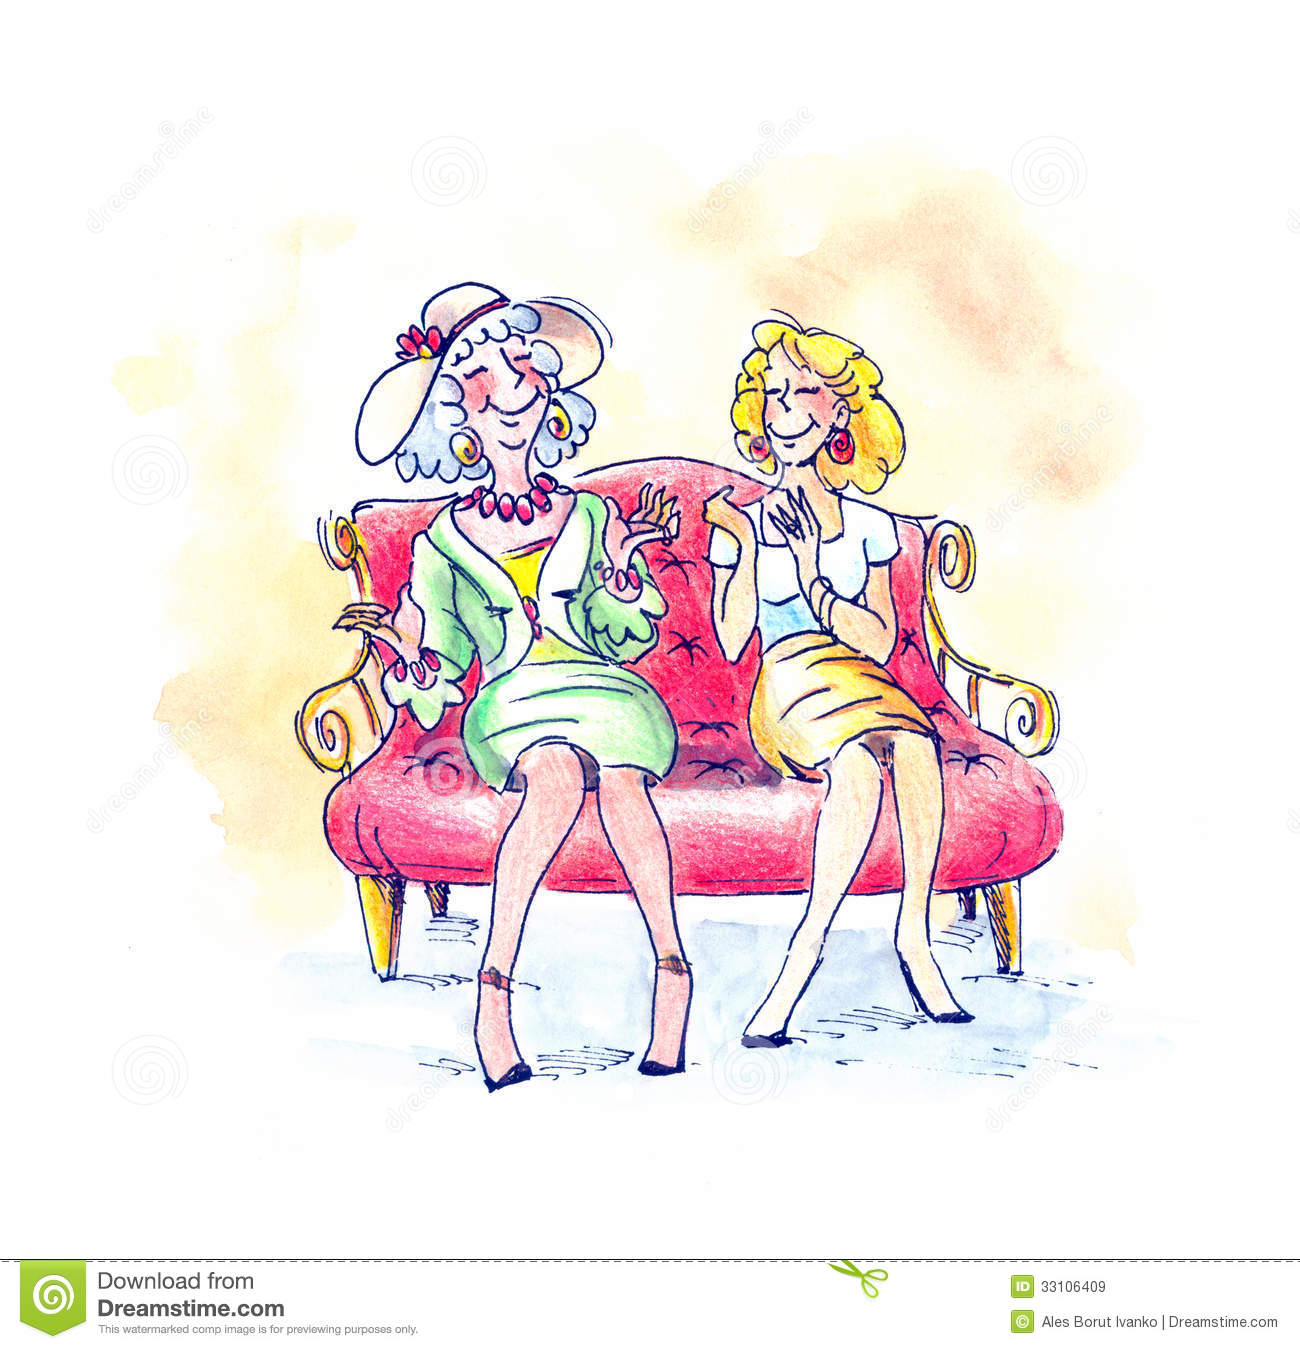 Two older females seating